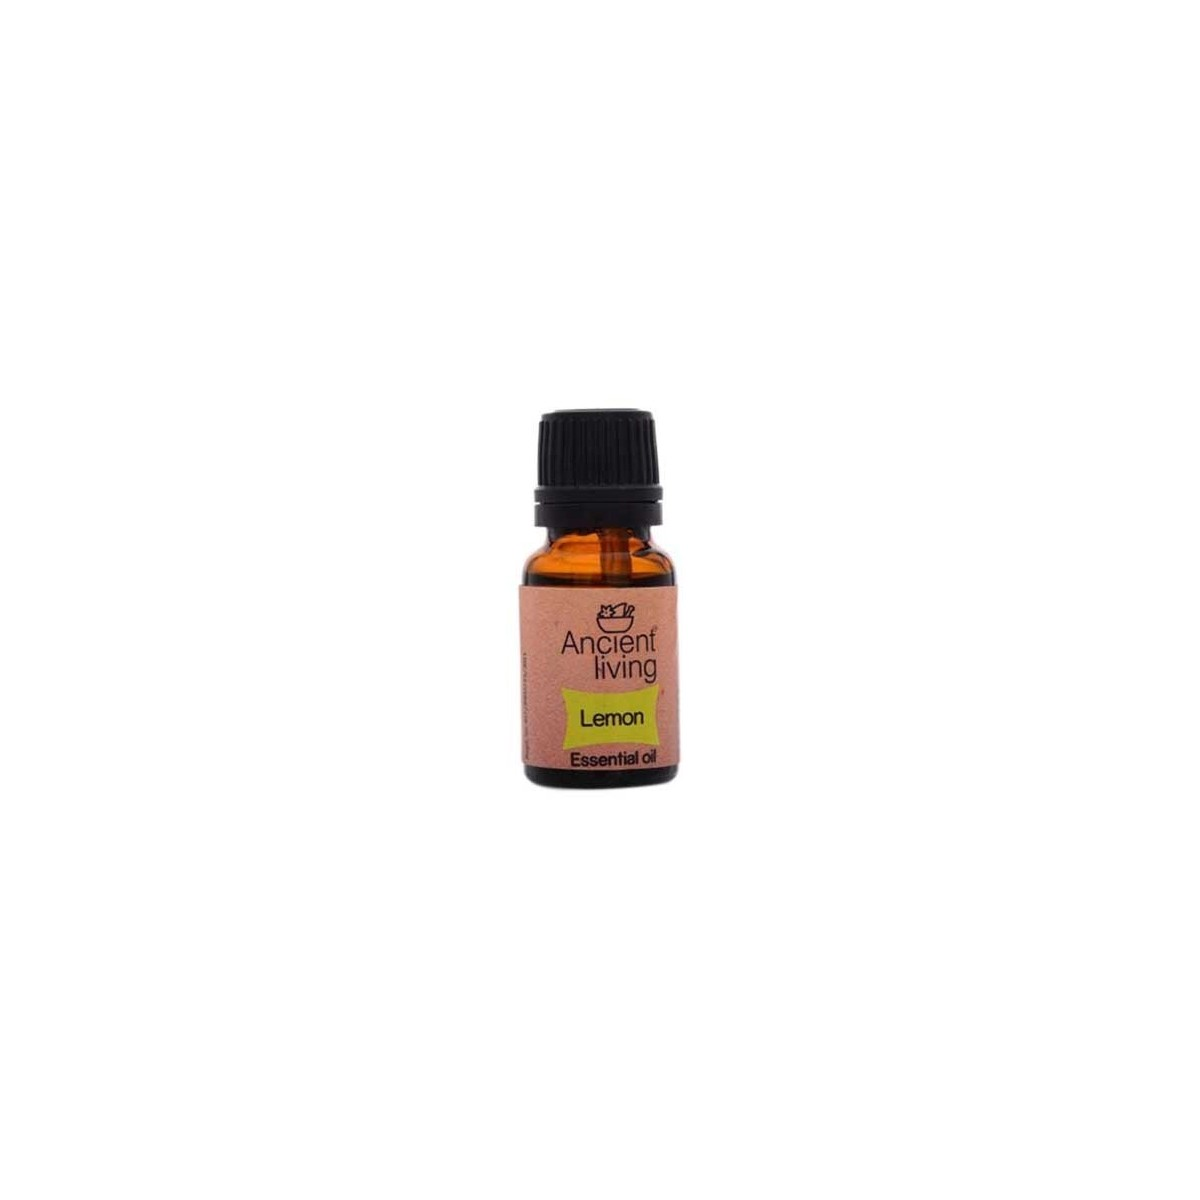 Ancient Living Lemon Essential Oil